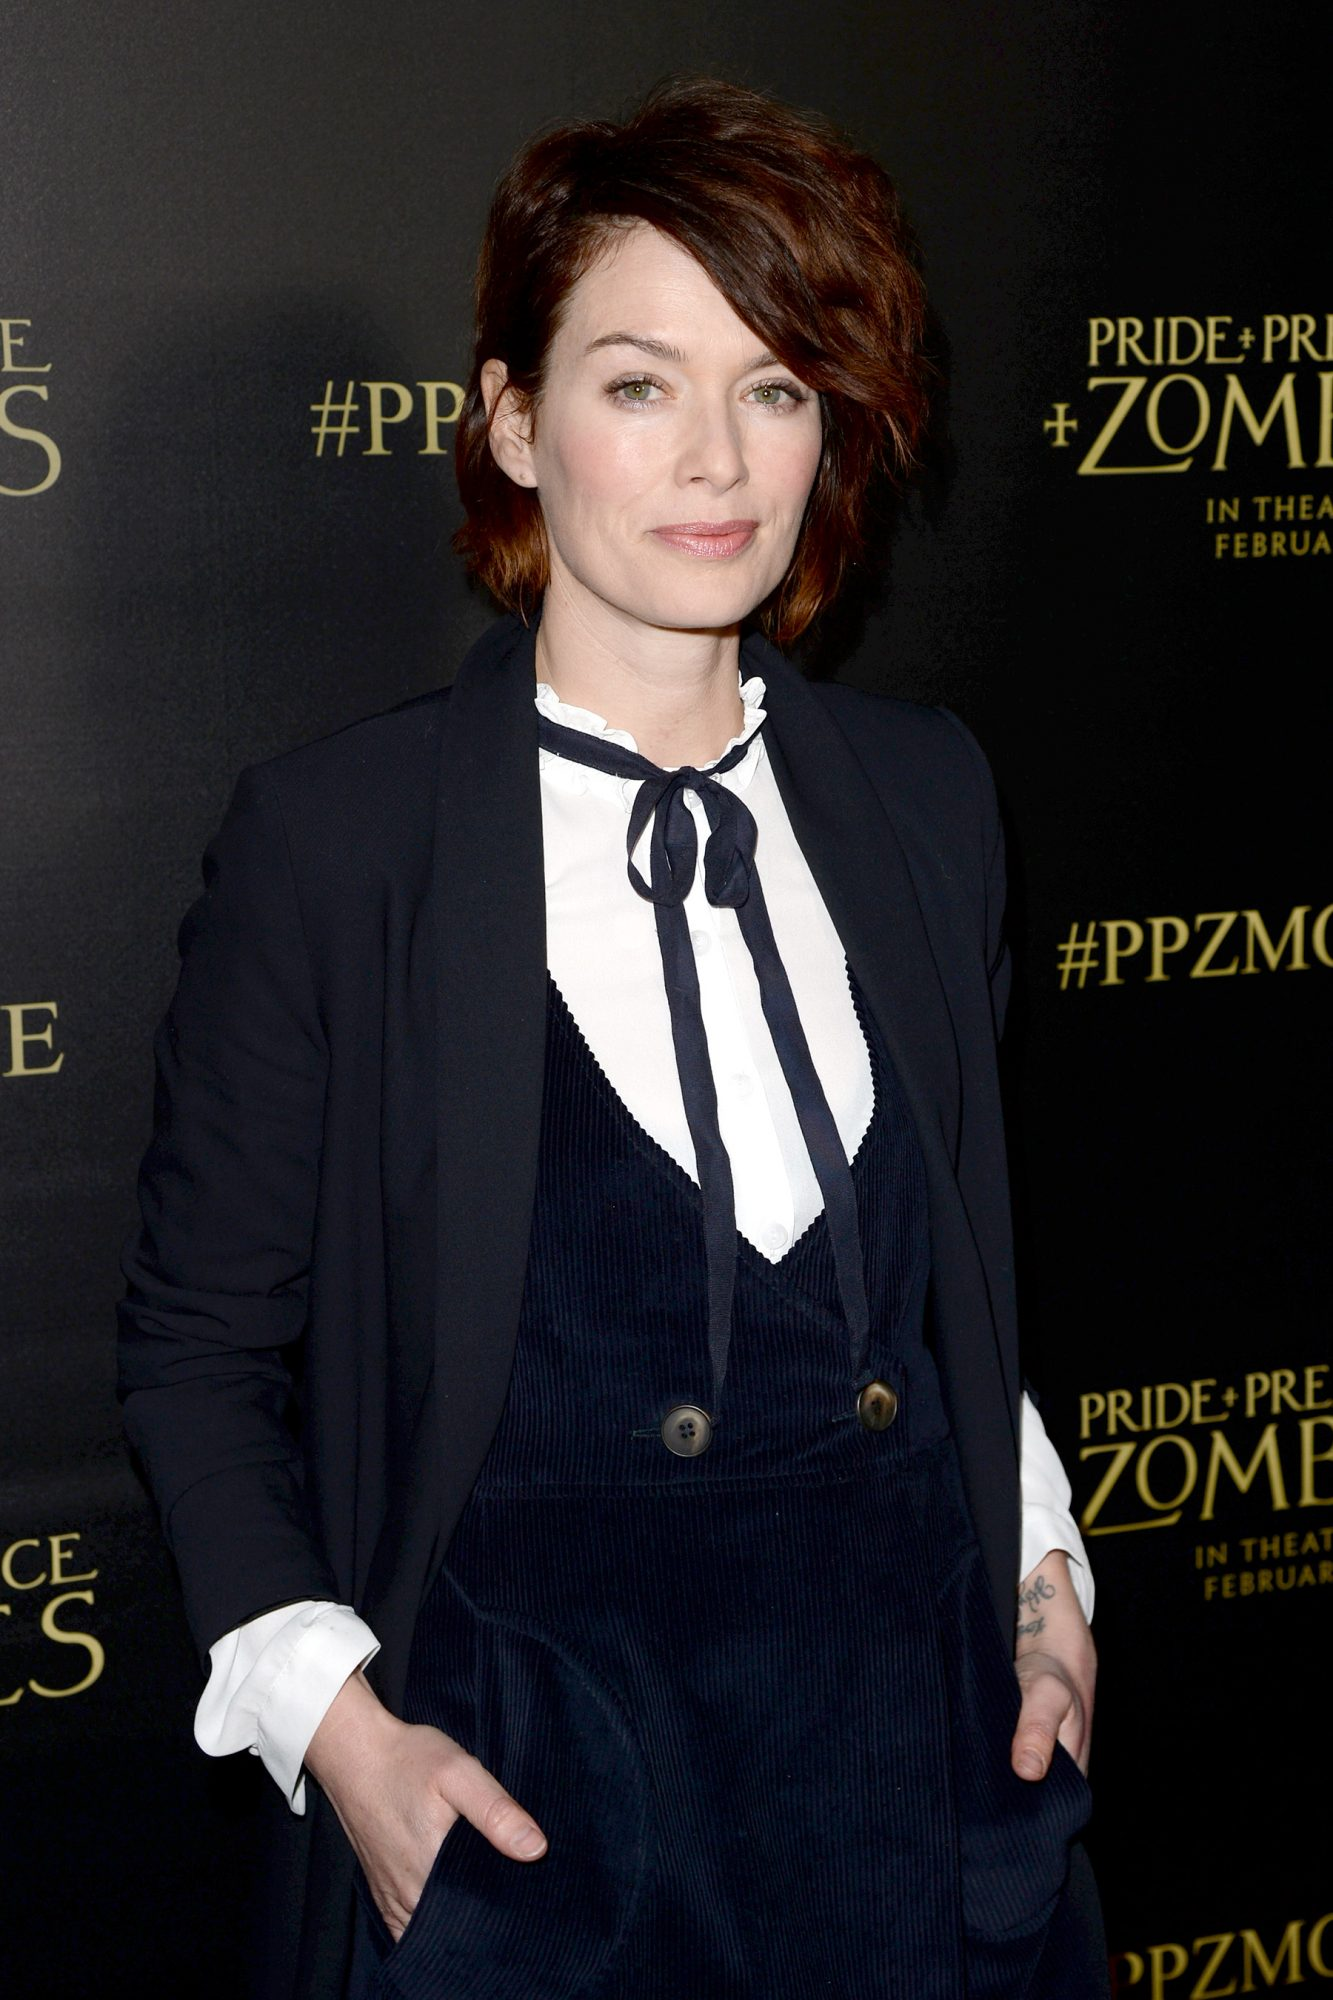 """Premiere Of Screen Gems' """"Pride And Prejudice And Zombies"""" - Red Carpet"""